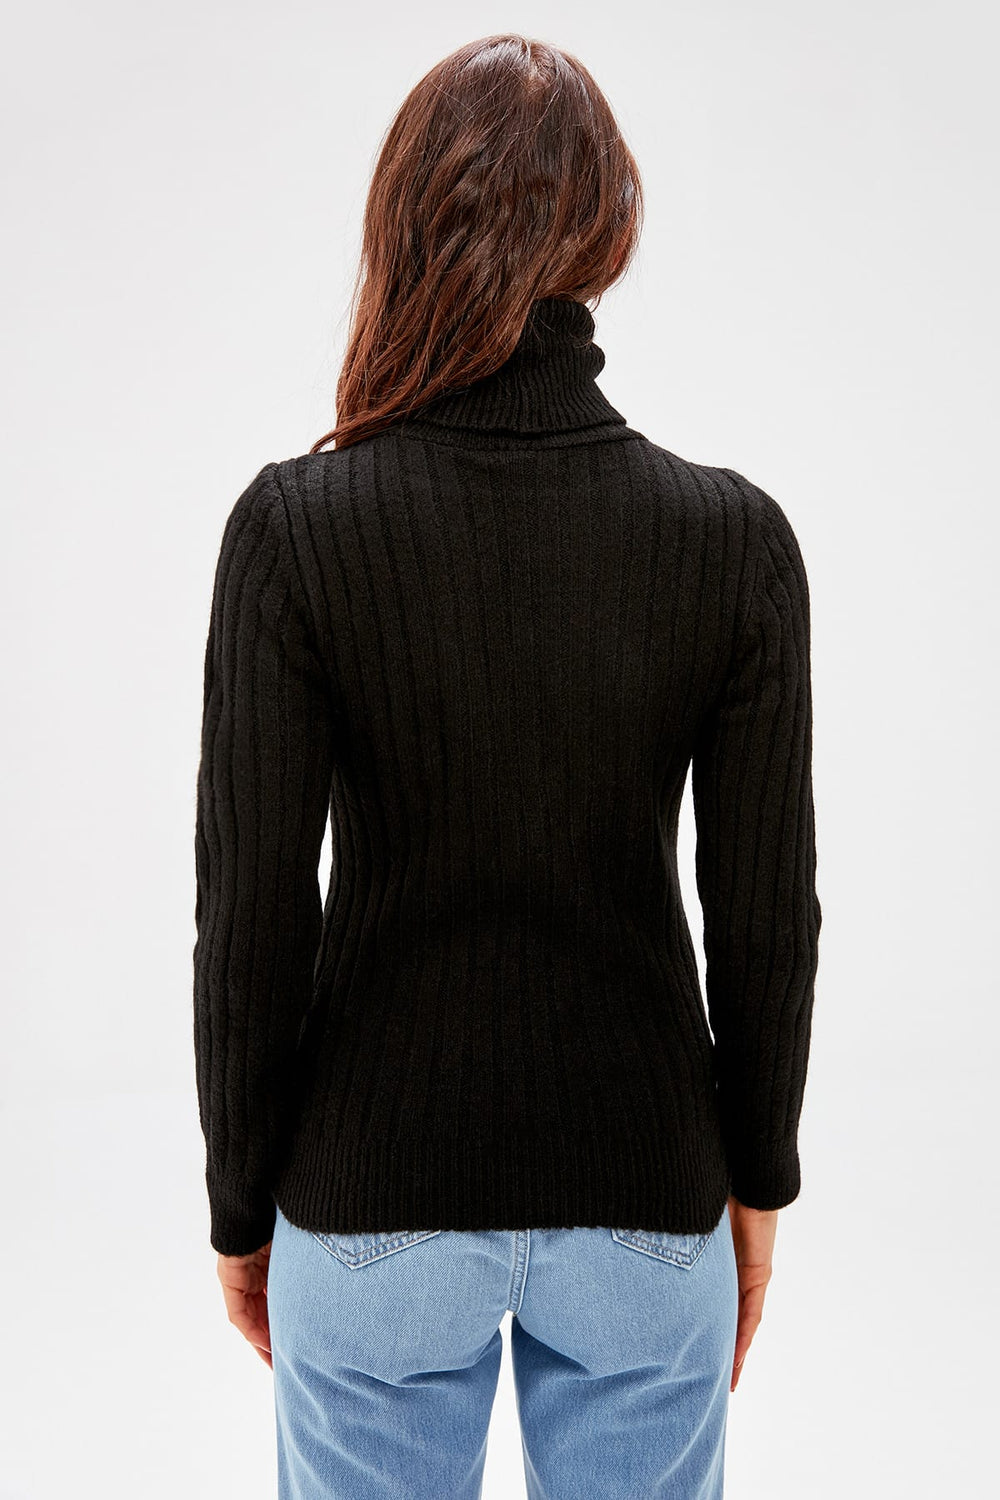 Black Turtleneck - Top Maxy